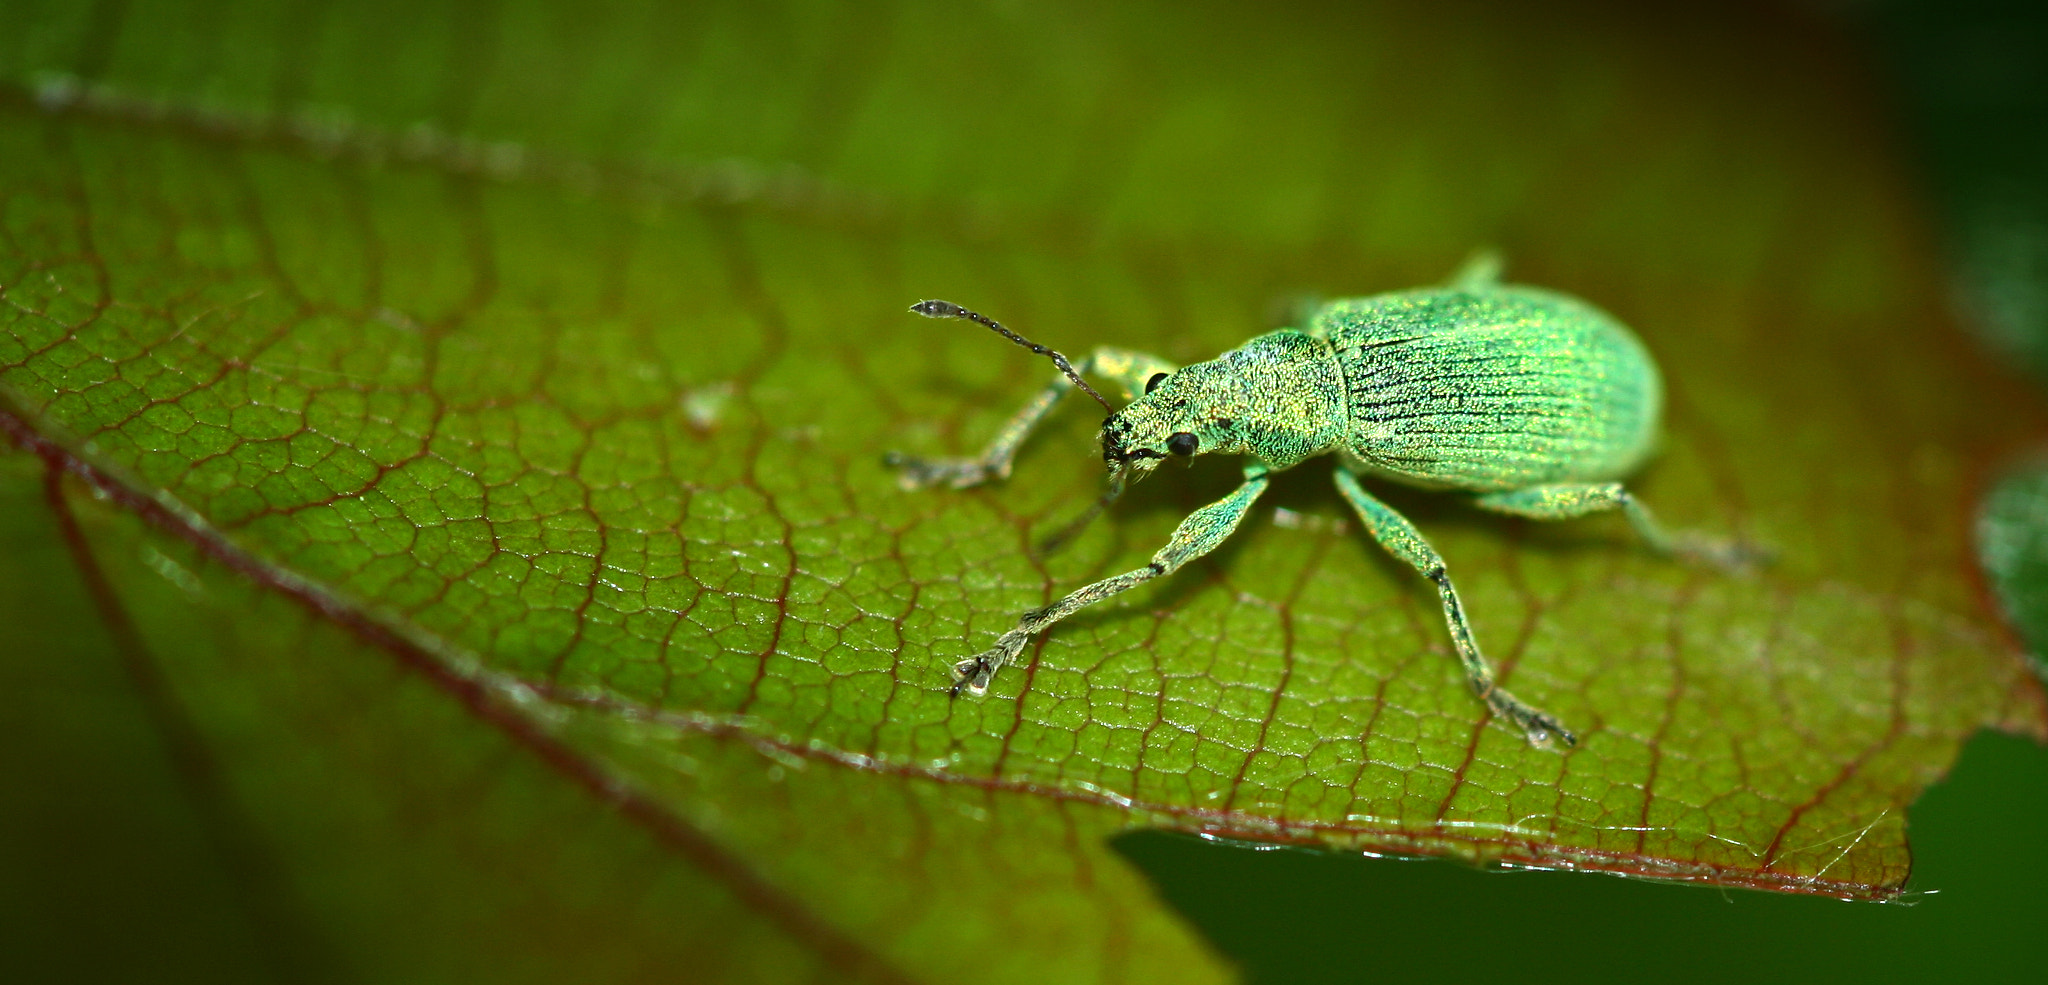 Photograph Beetle on leaf by Thijs Decoene on 500px